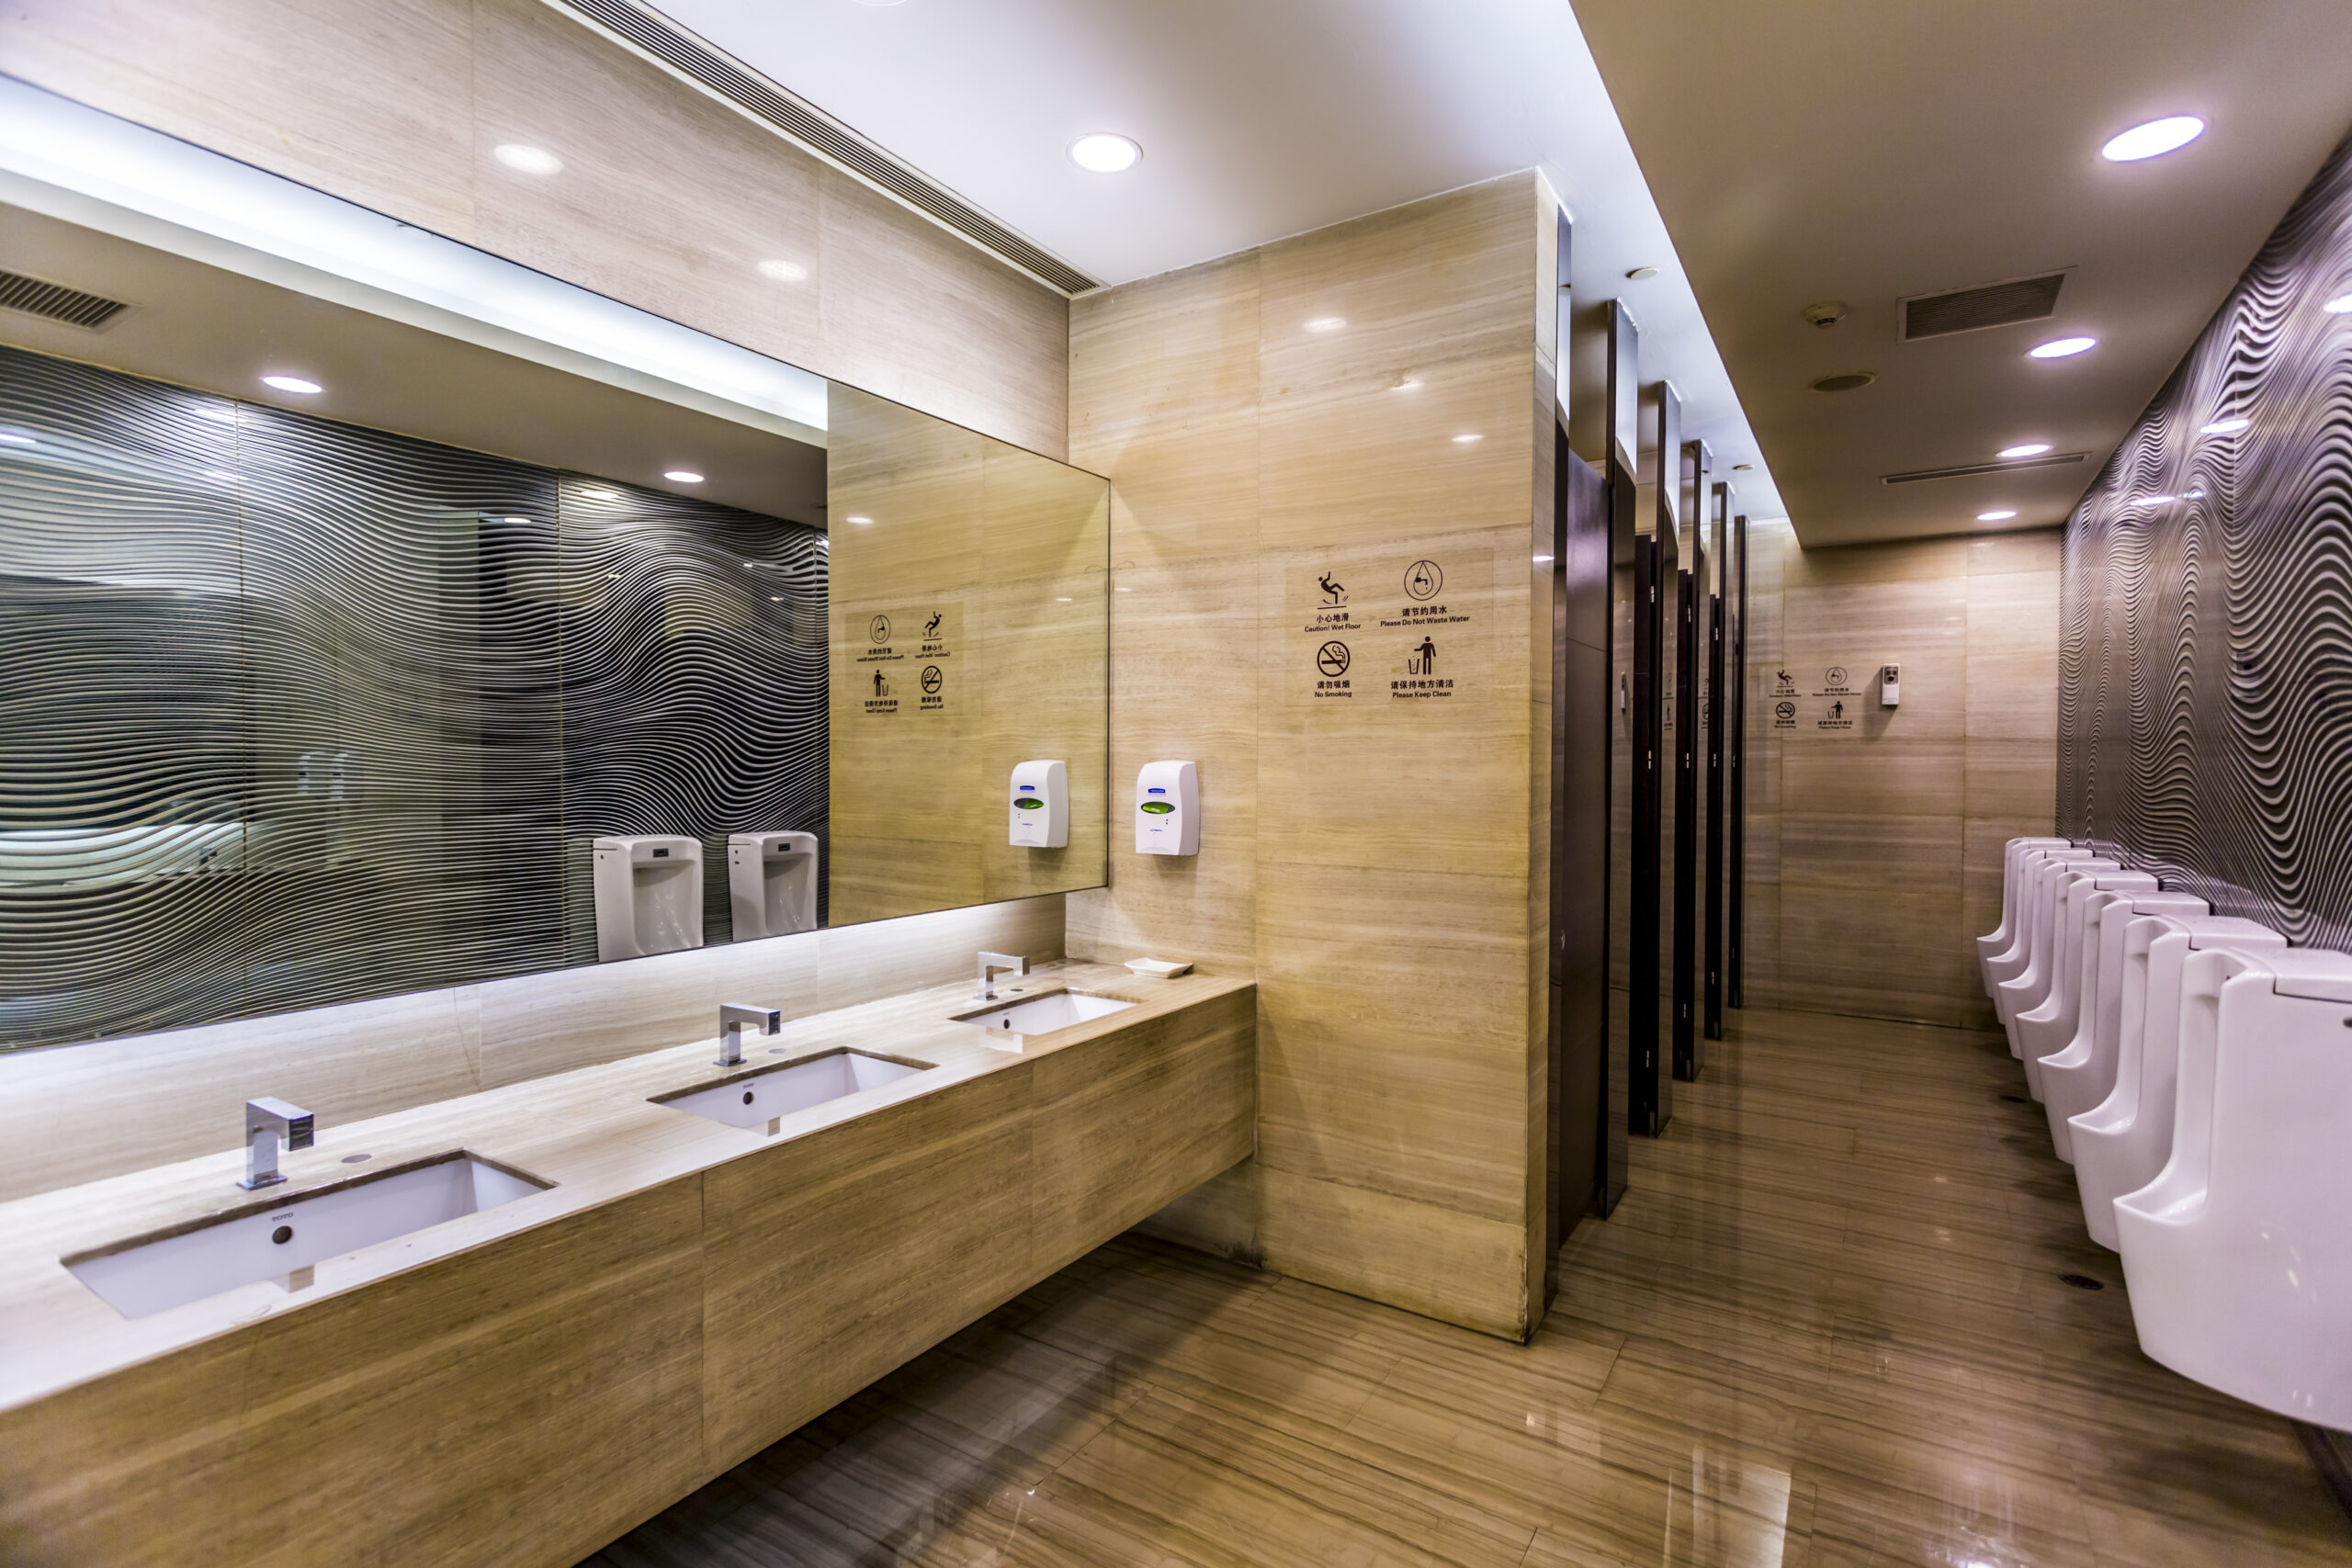 Bathroom Cleaning Products | Washroom Cleaning Supplies in UAE